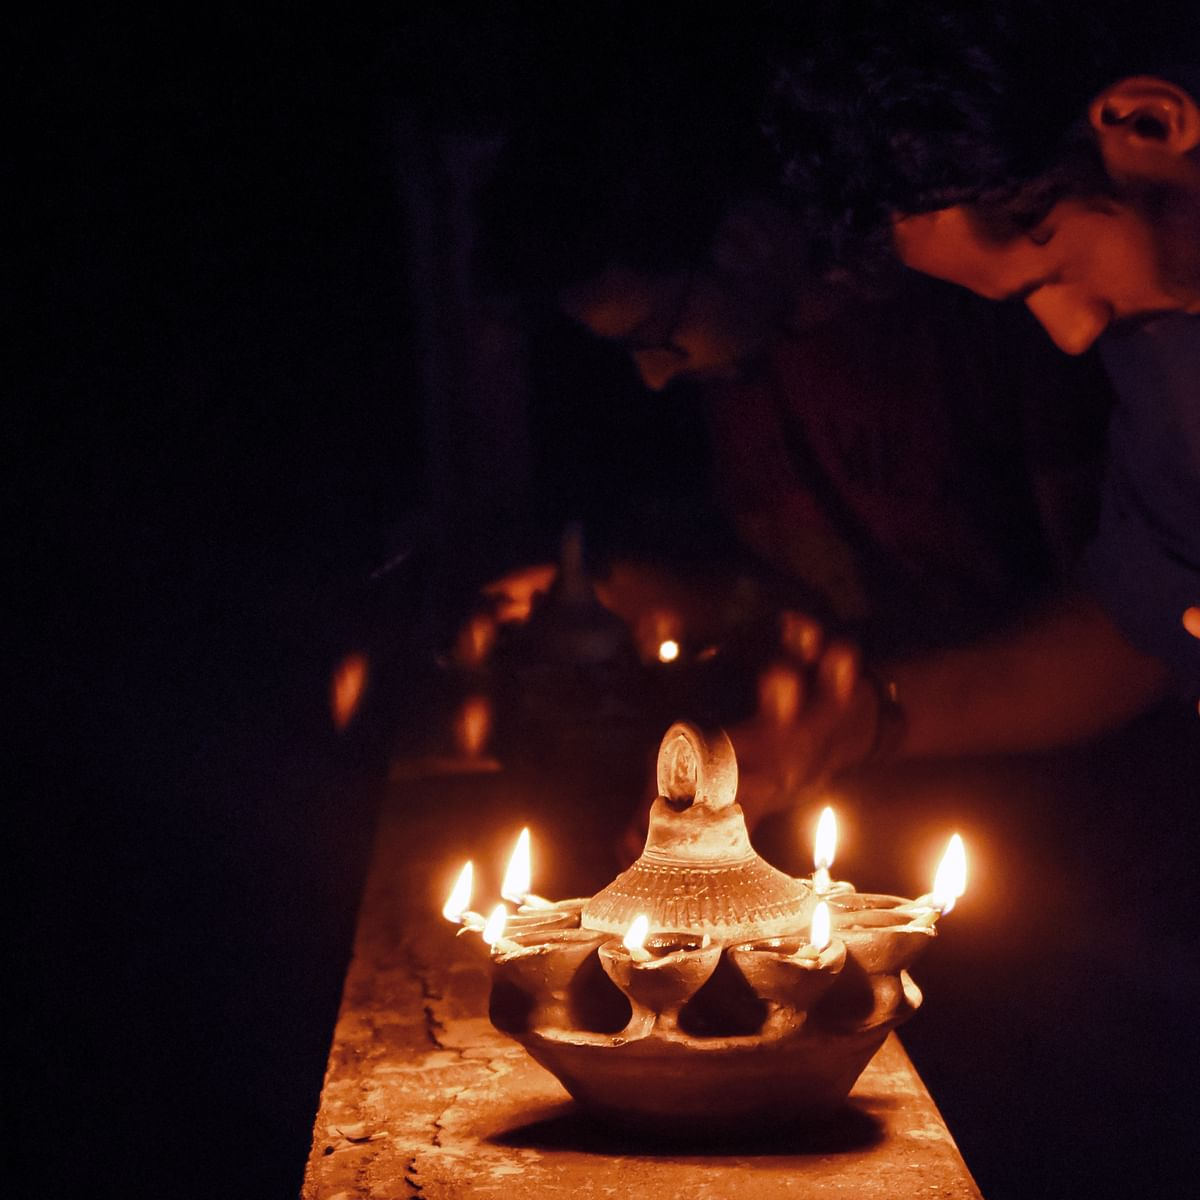 COVID-19: India sees 30 per cent jump in cases post Diwali